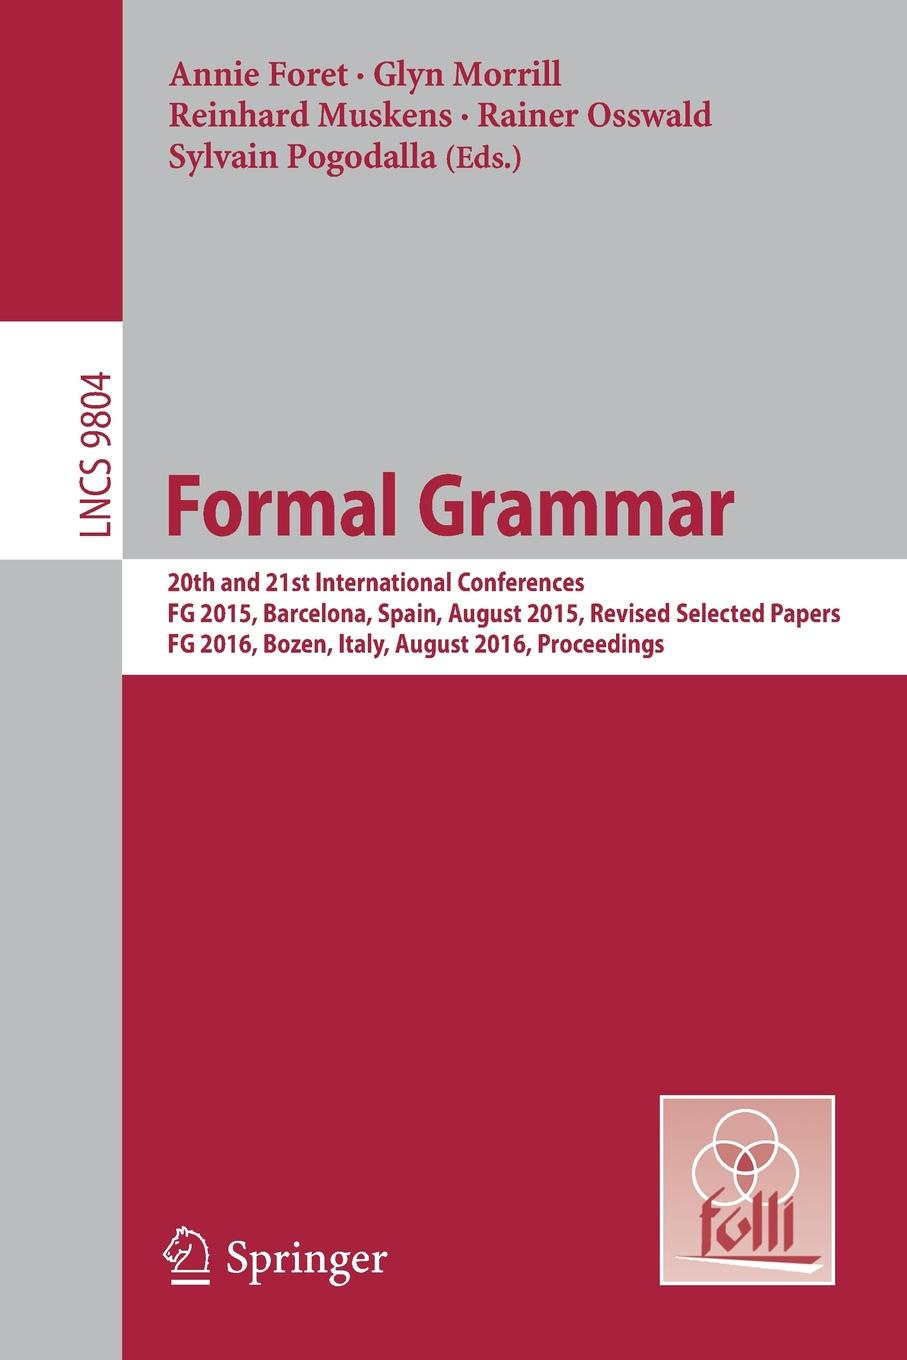 Formal Grammar. 20th and 21st International Conferences, FG 2015, Barcelona, Spain, August 2015, Revised Selected Papers. FG 2016, Bozen, Italy, August 2016, Proceedings